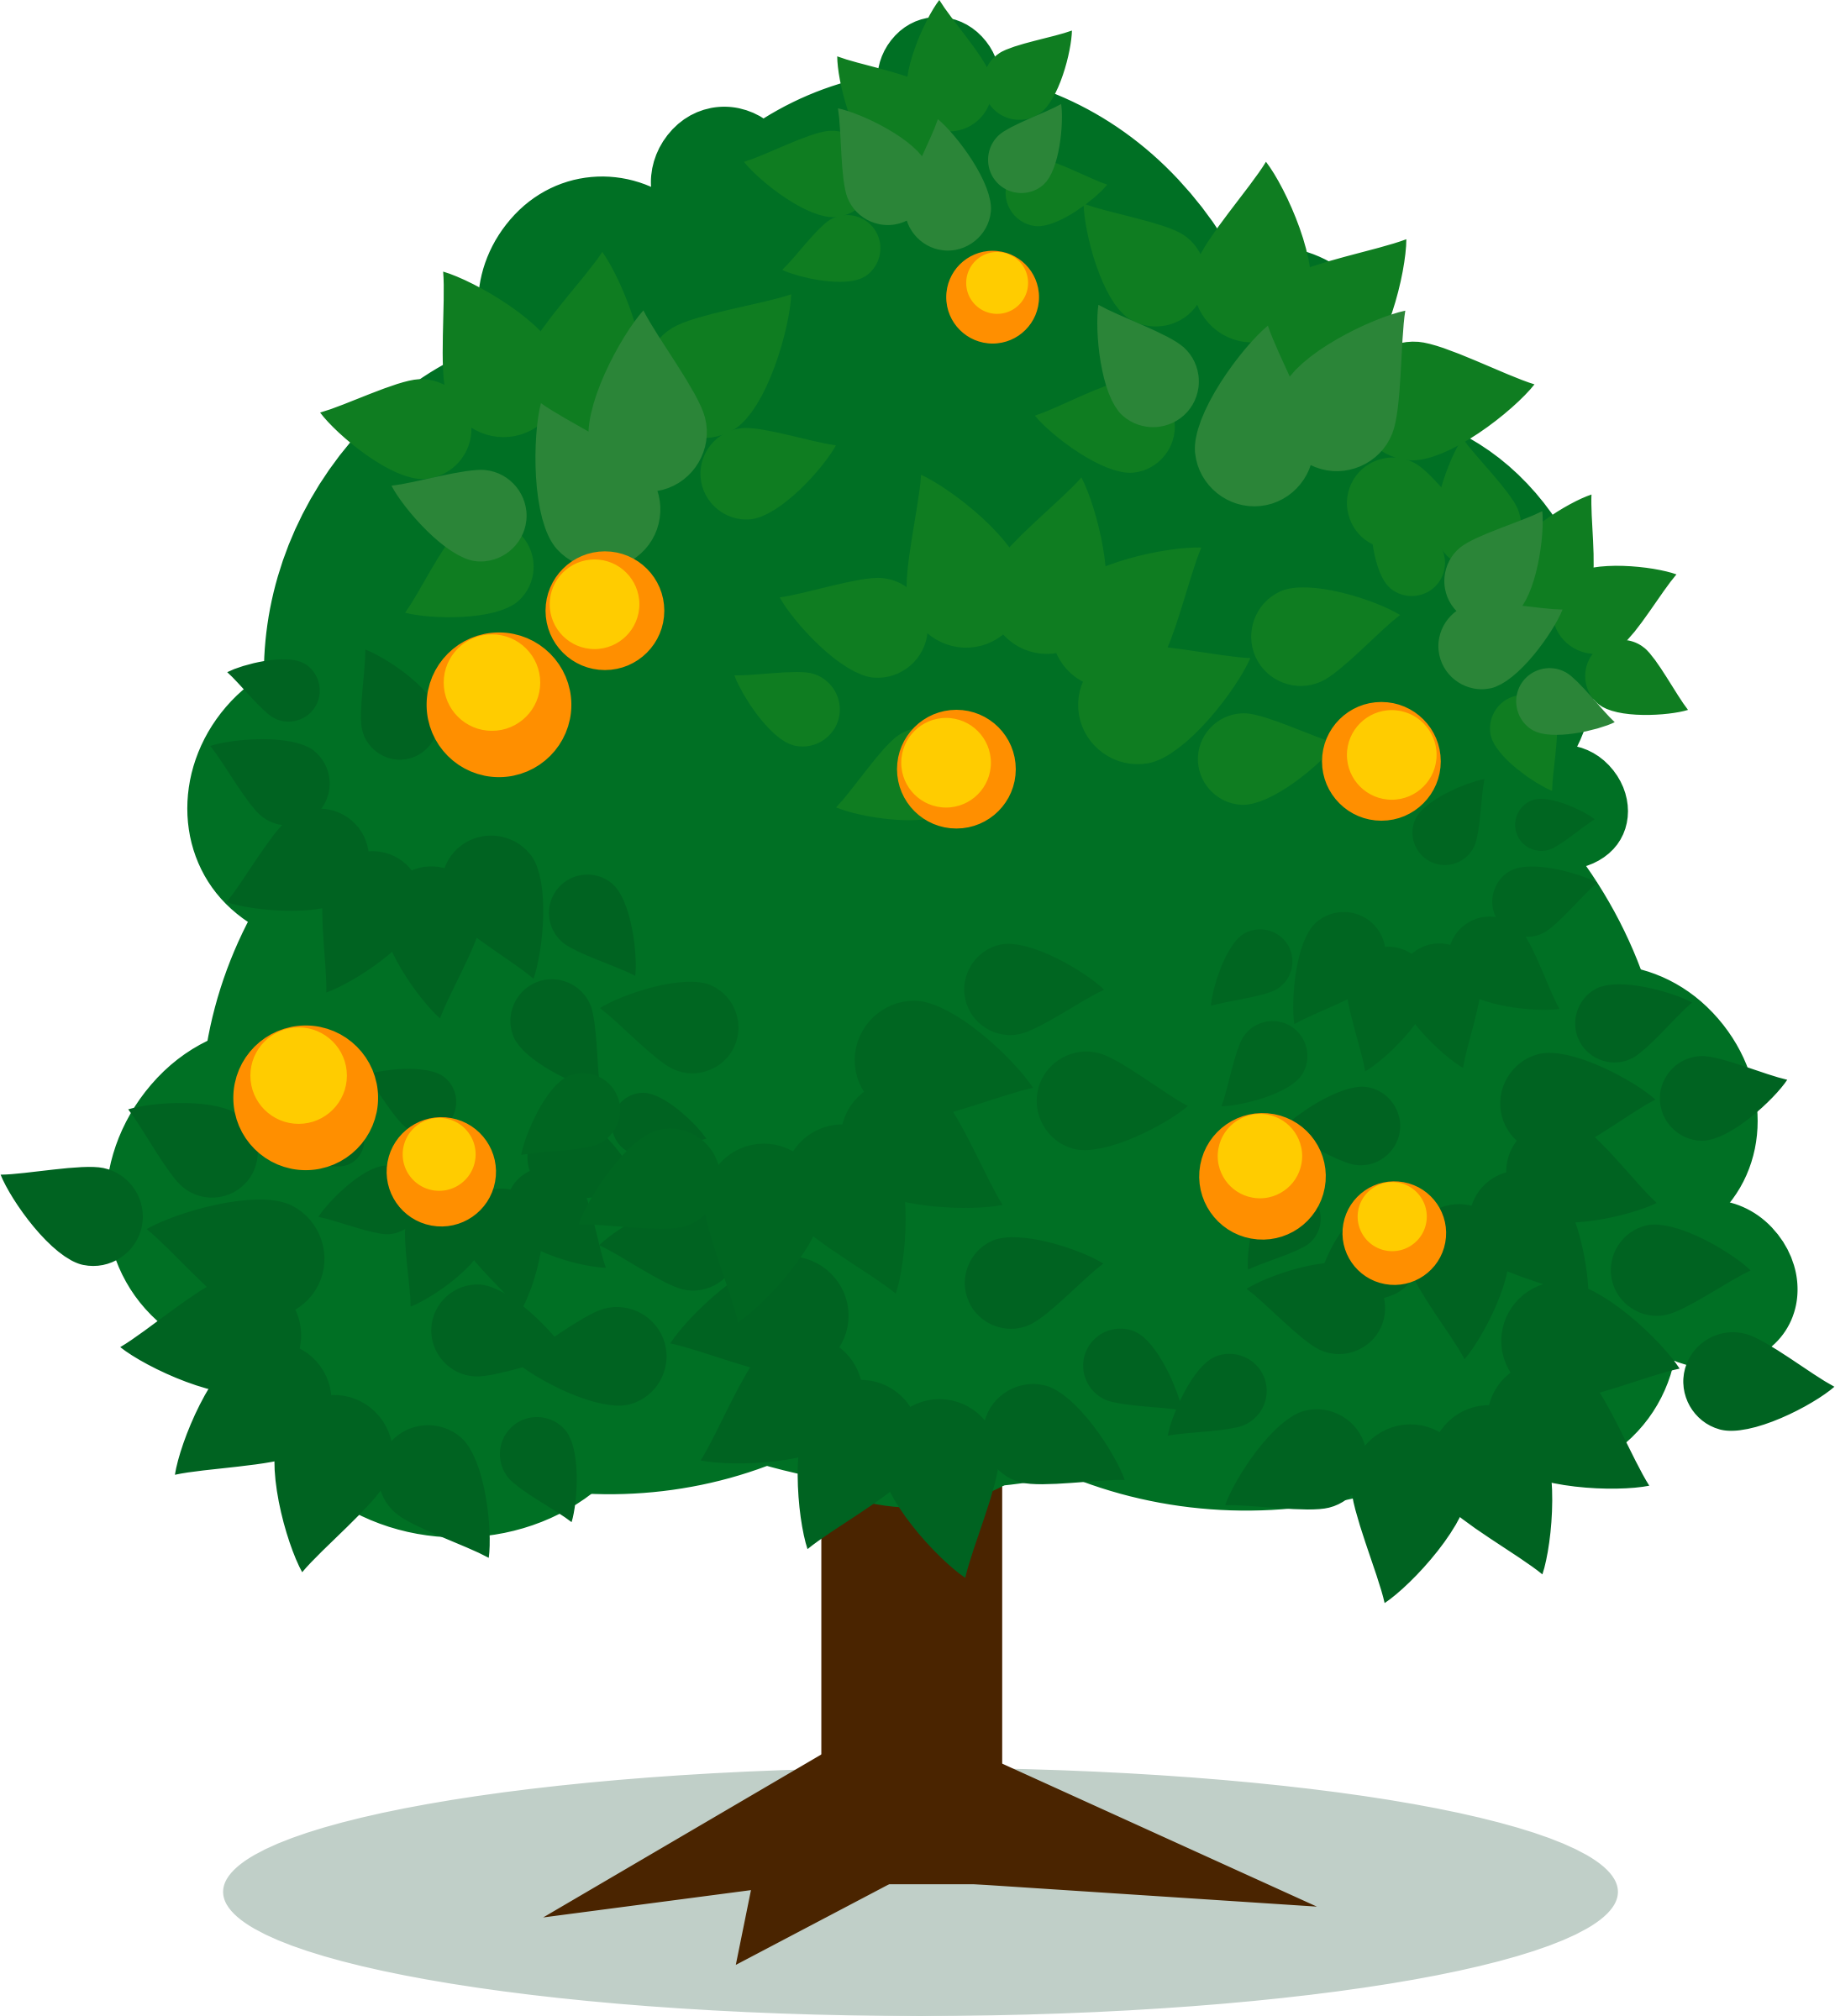 Tree with fruit clipart banner stock Clipart - Tree 4 banner stock